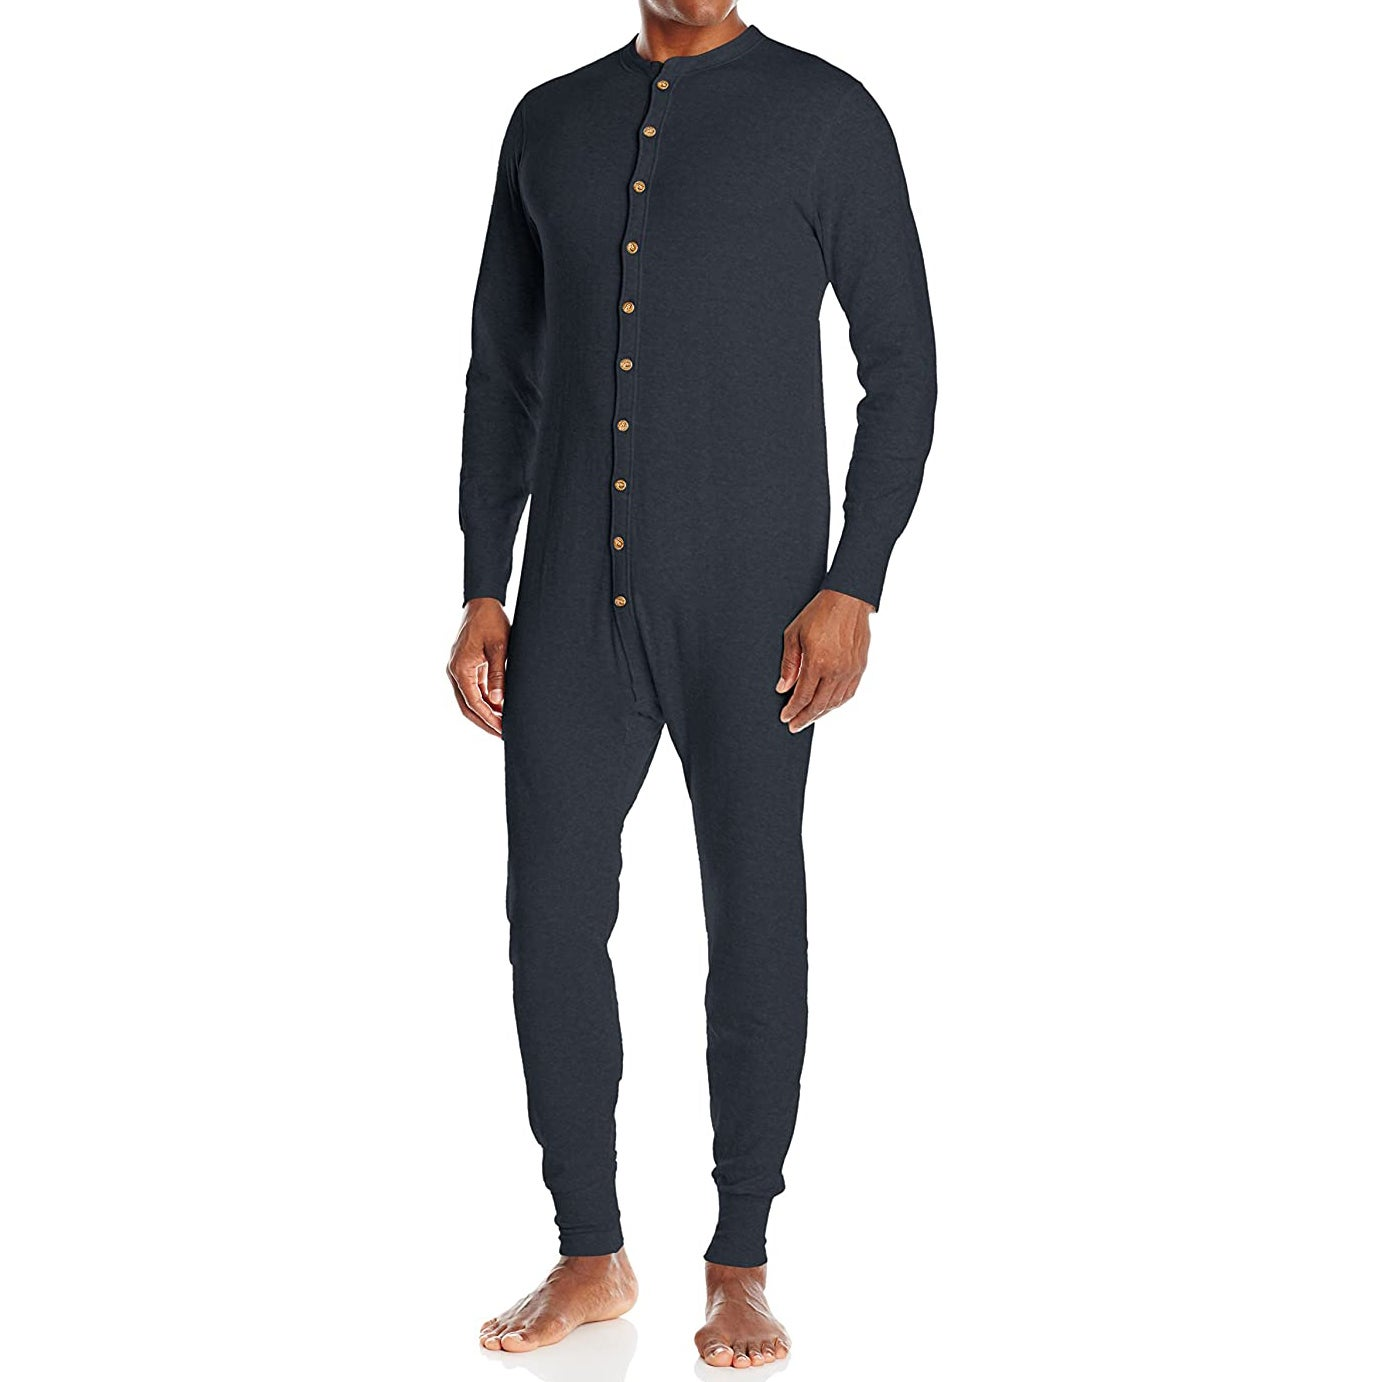 Duofold's Men's Mid Weight Double-Layer Thermal Union Suit